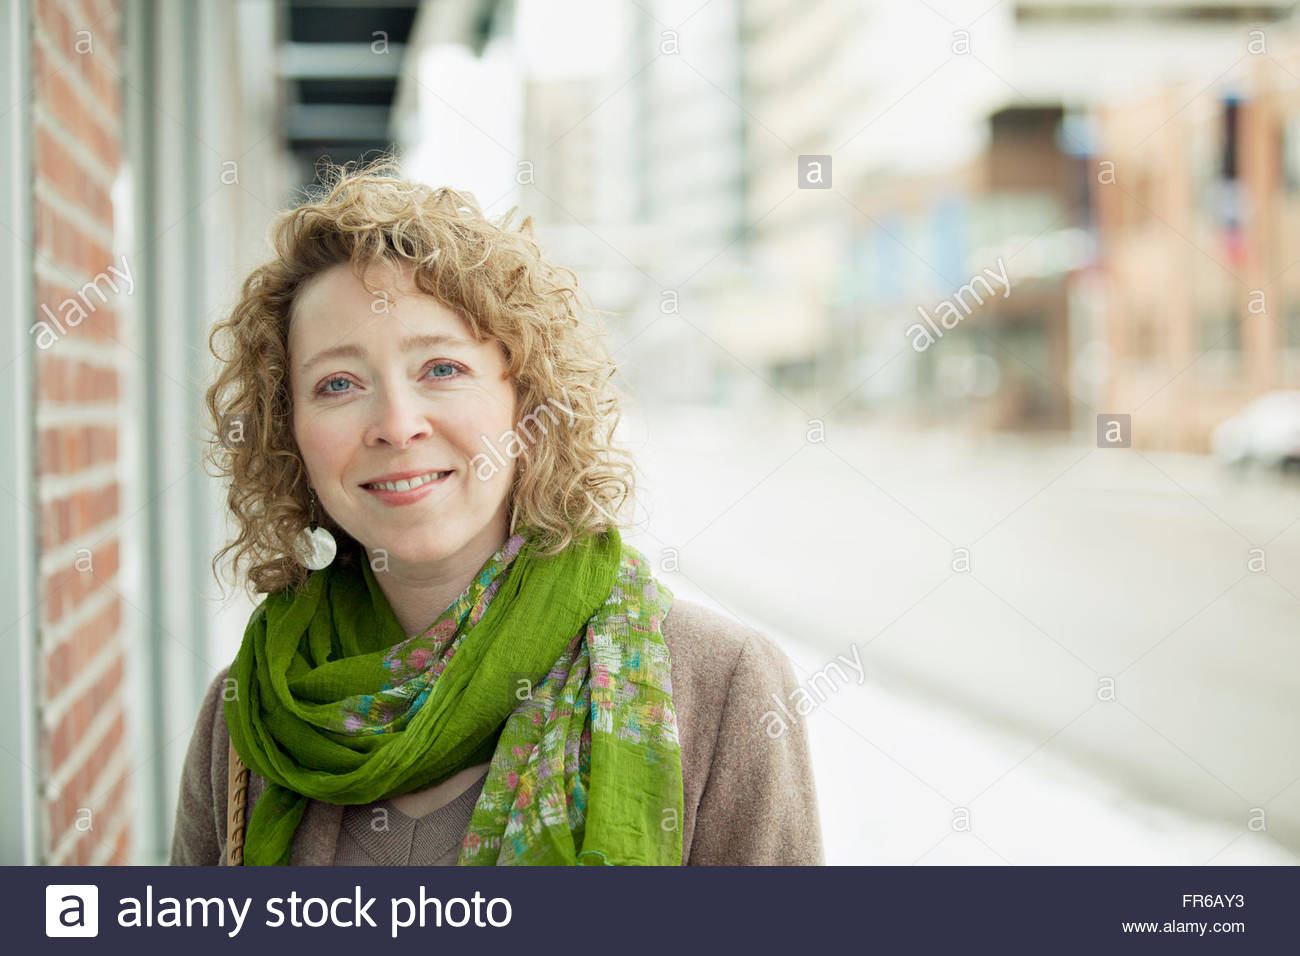 middle-aged woman out for a brisk walk - Stock Image